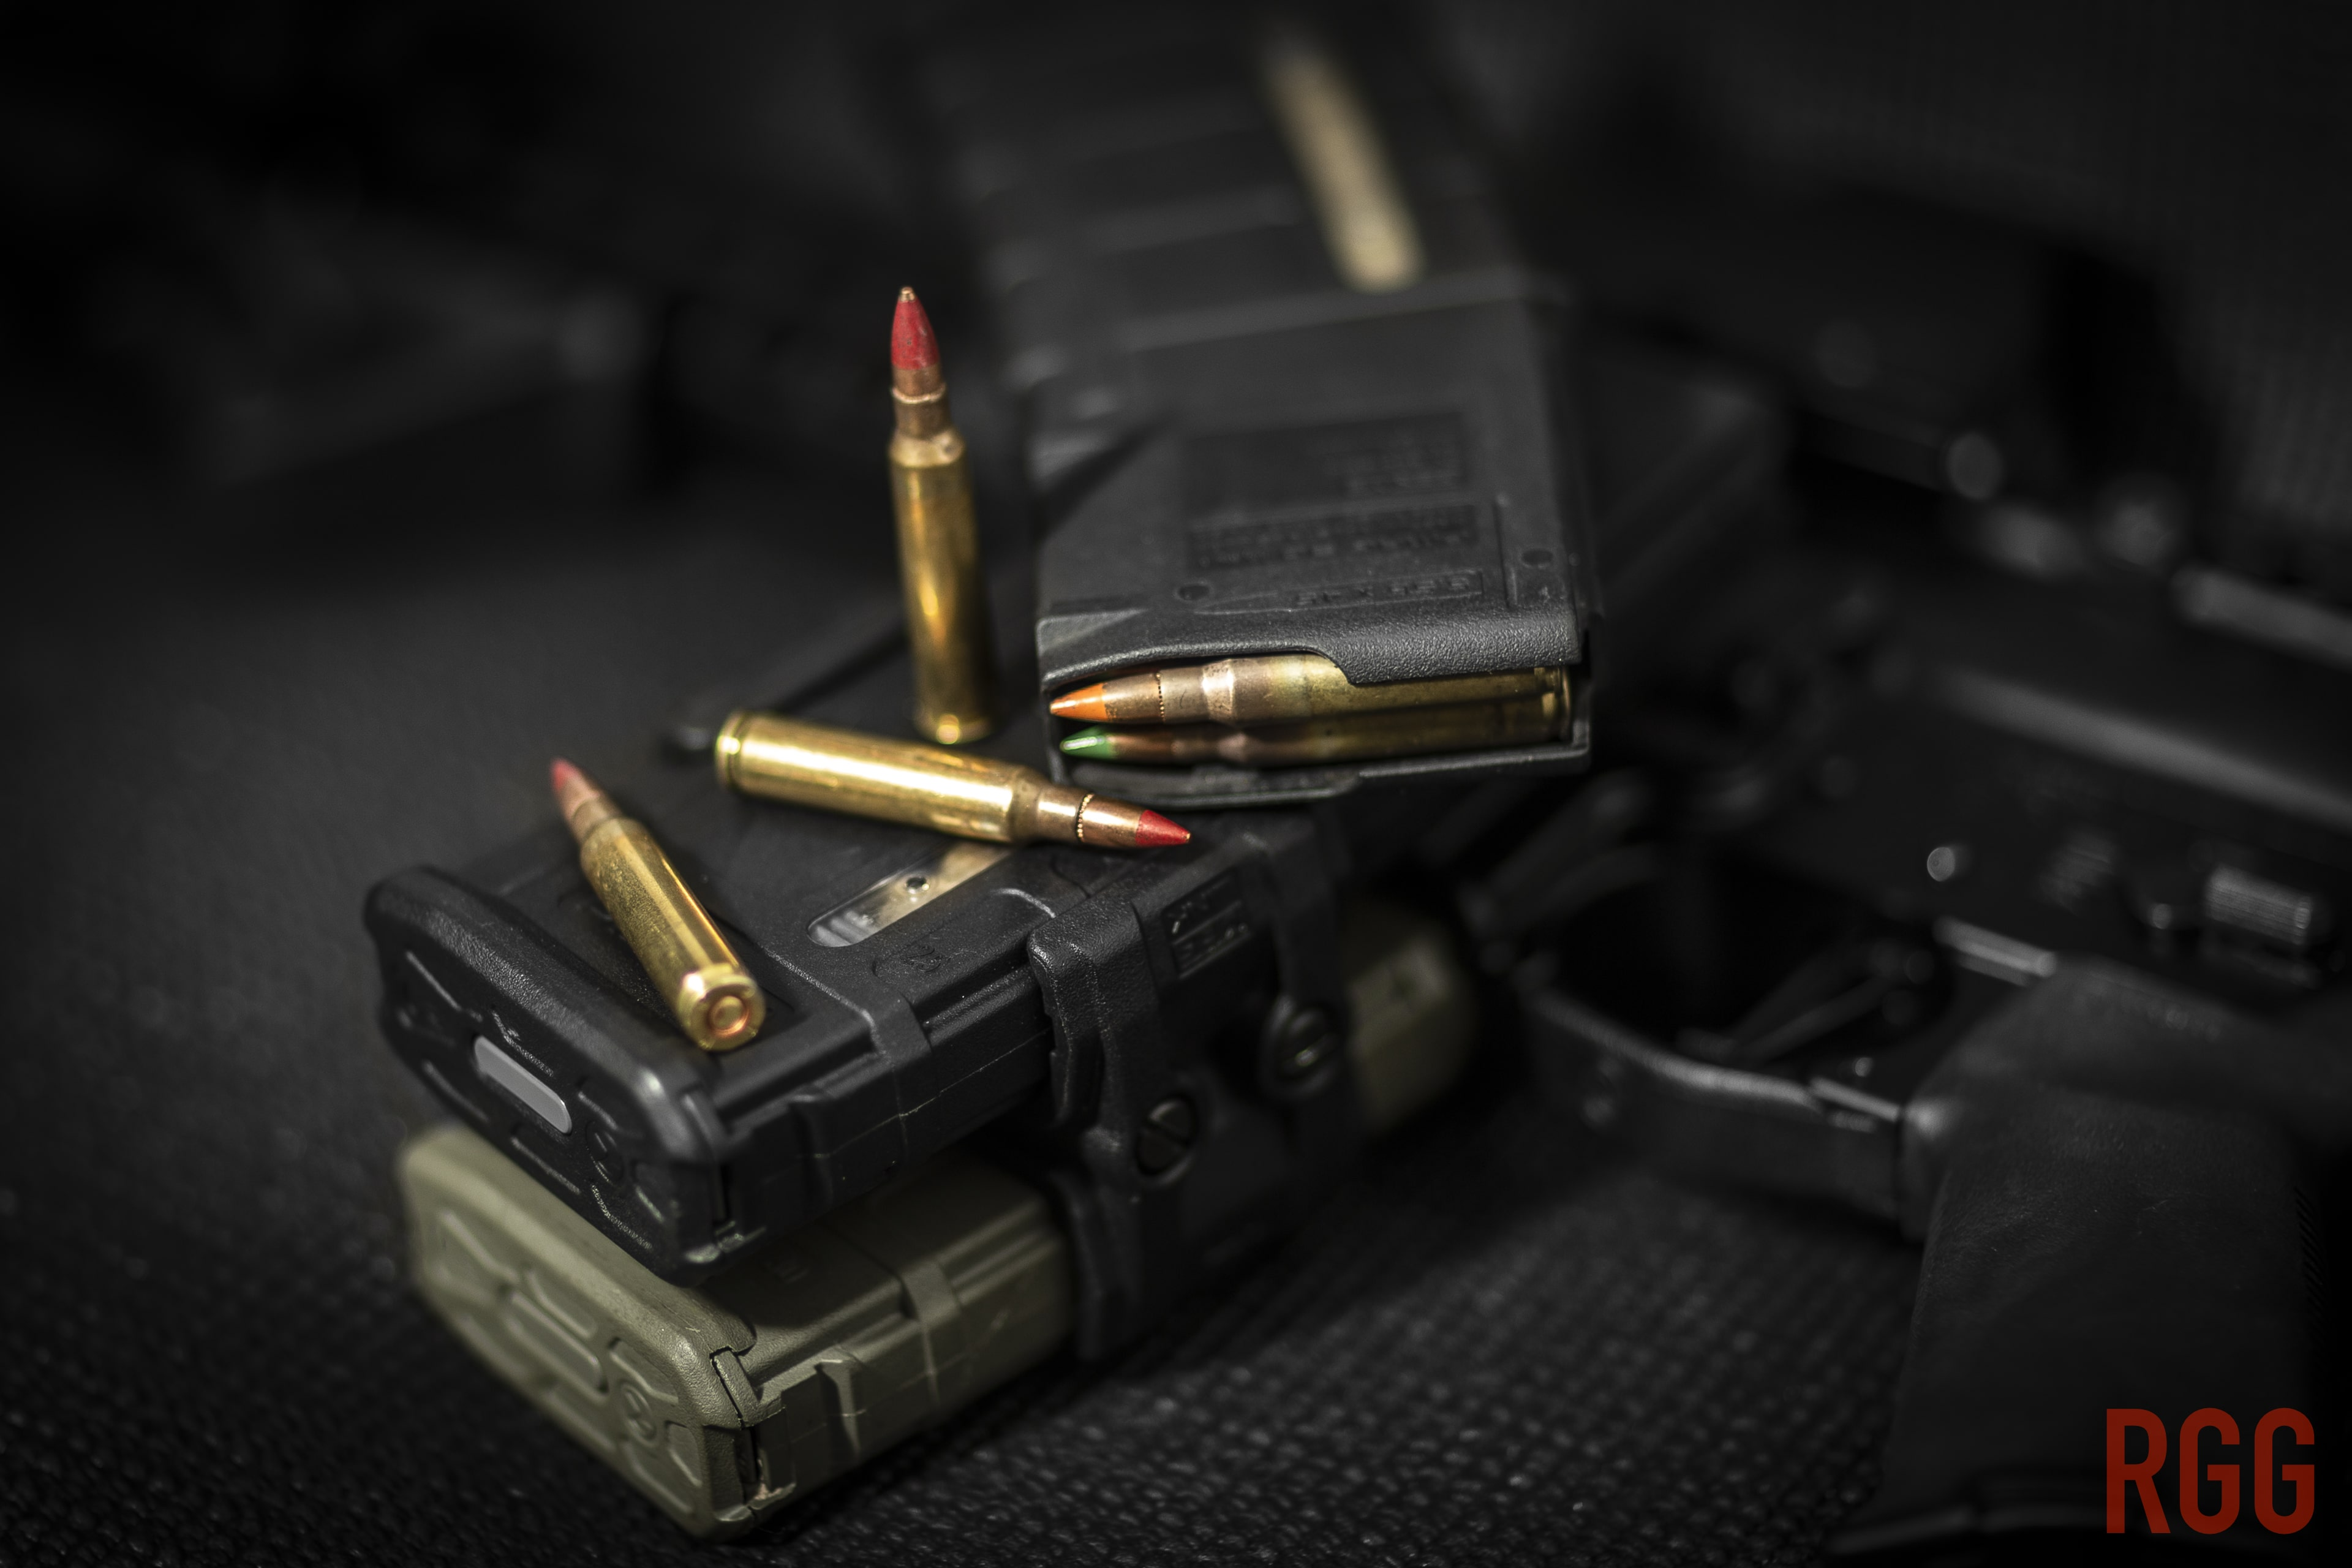 Some M196 and M856 5.56mm tracer ammunition.